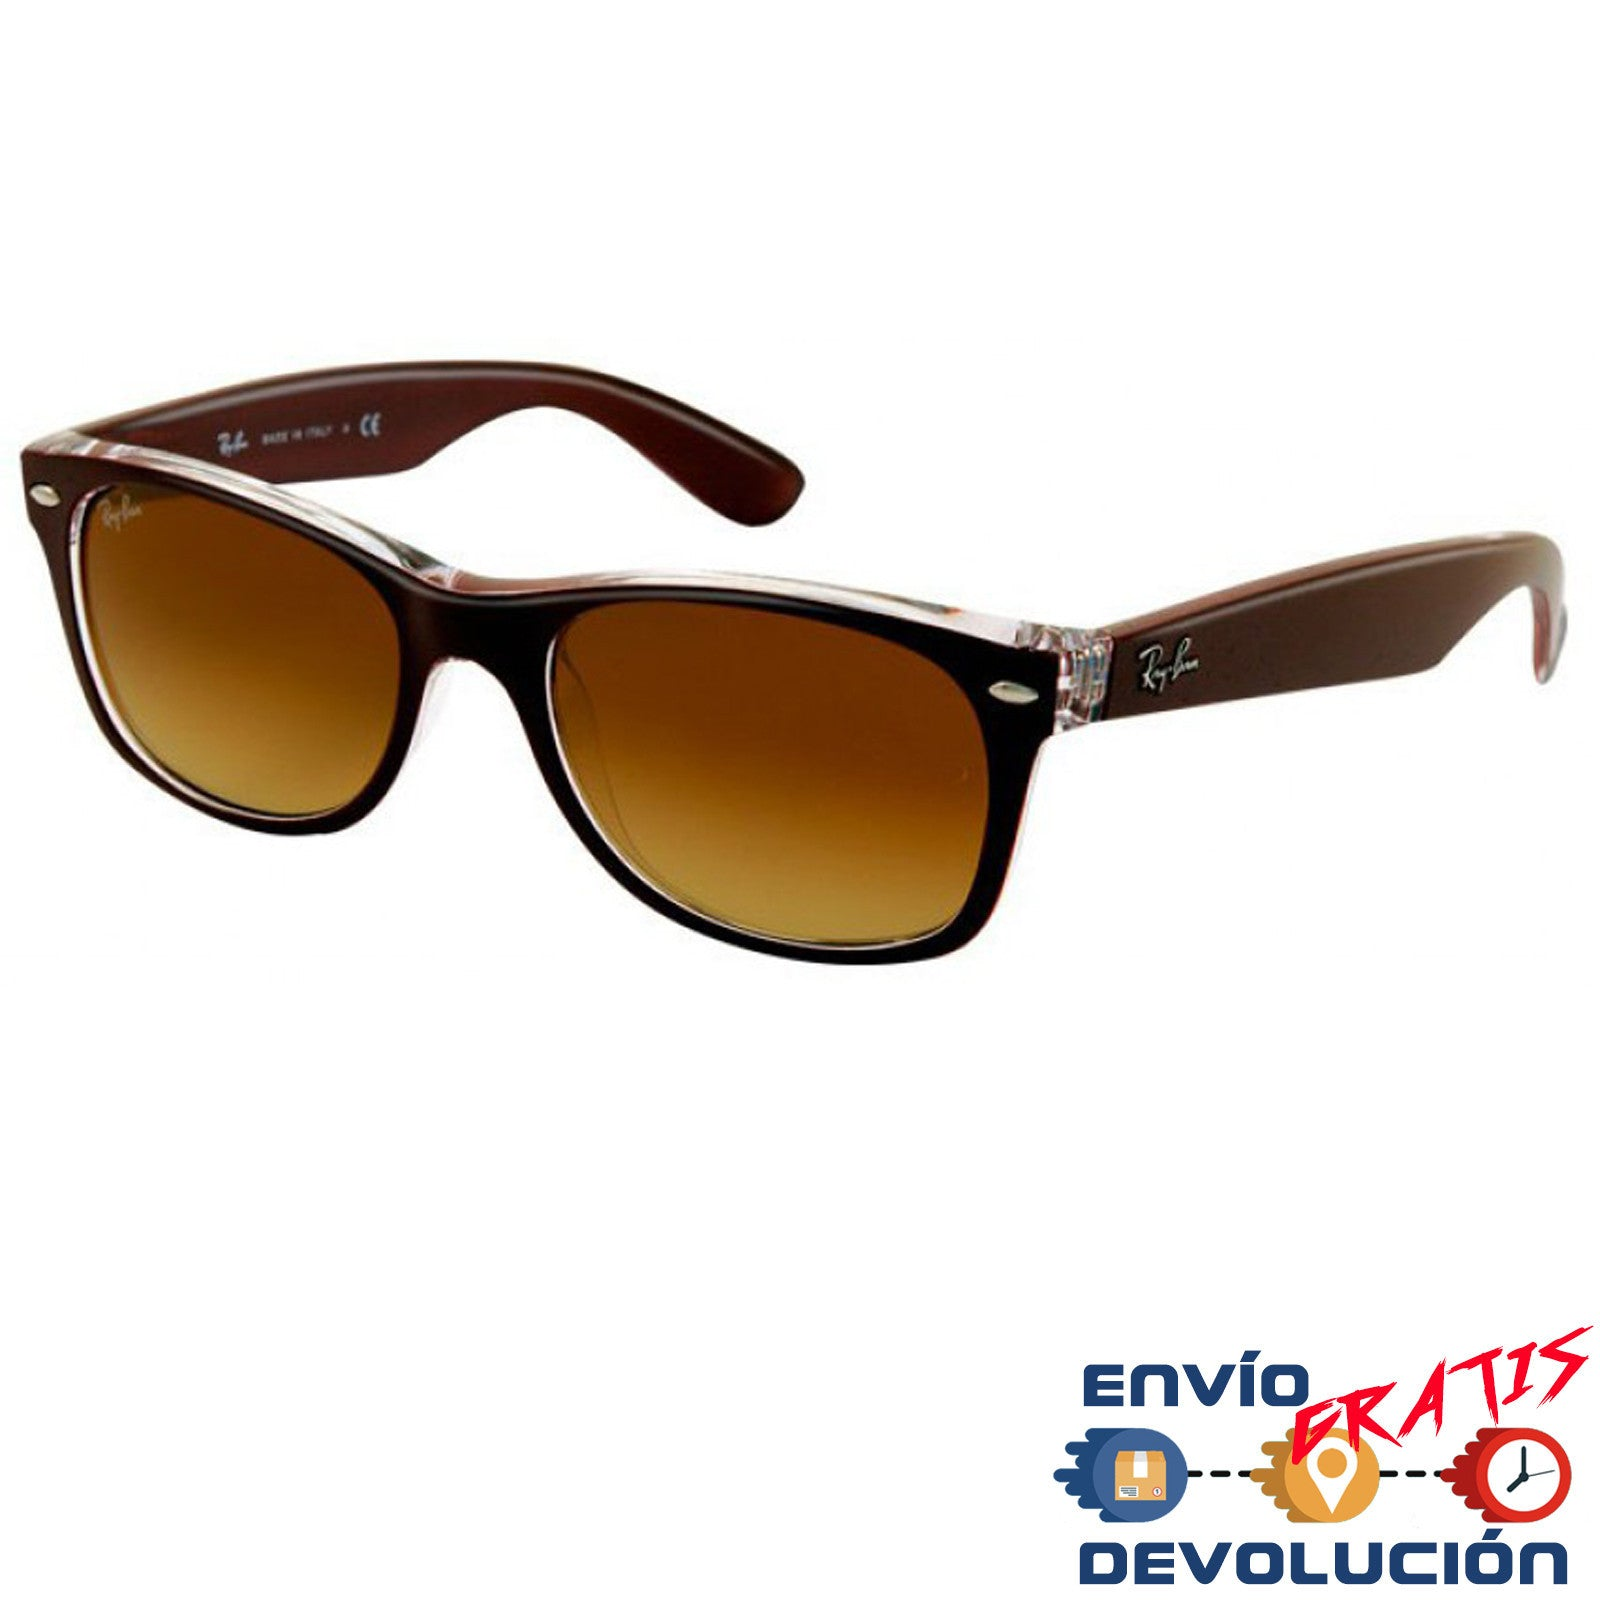 RAY-BAN NEW WAYFARER RB2132 6054M2 EDICIÓN LIMITADA